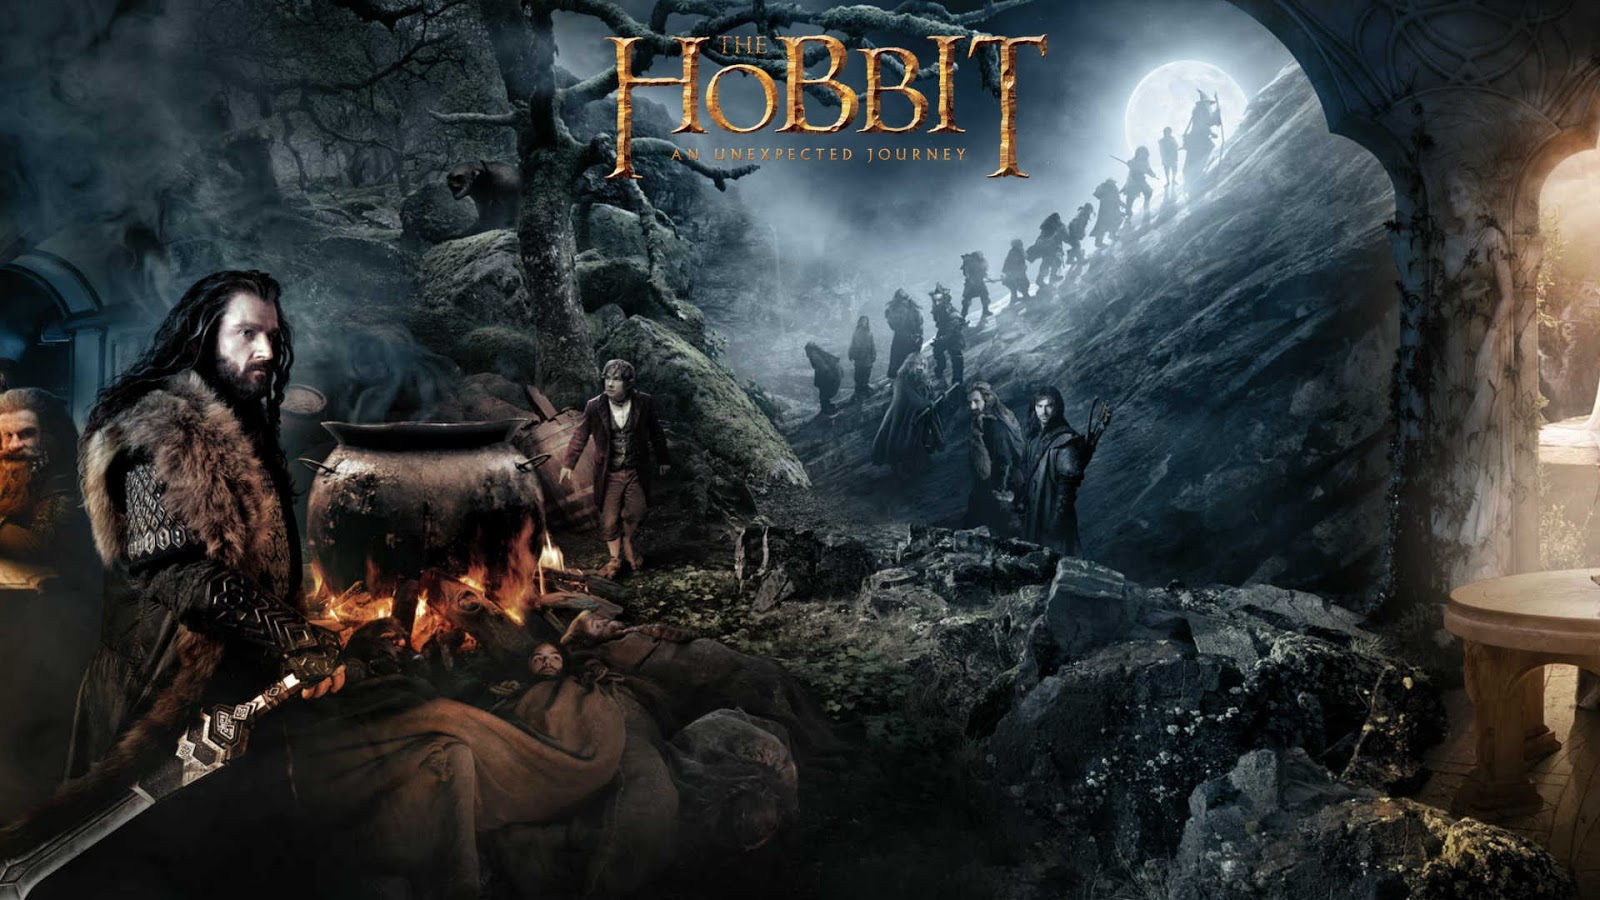 The Hobbit Movie Wallpaper Set 2   2013 Wallpapers 1600x900